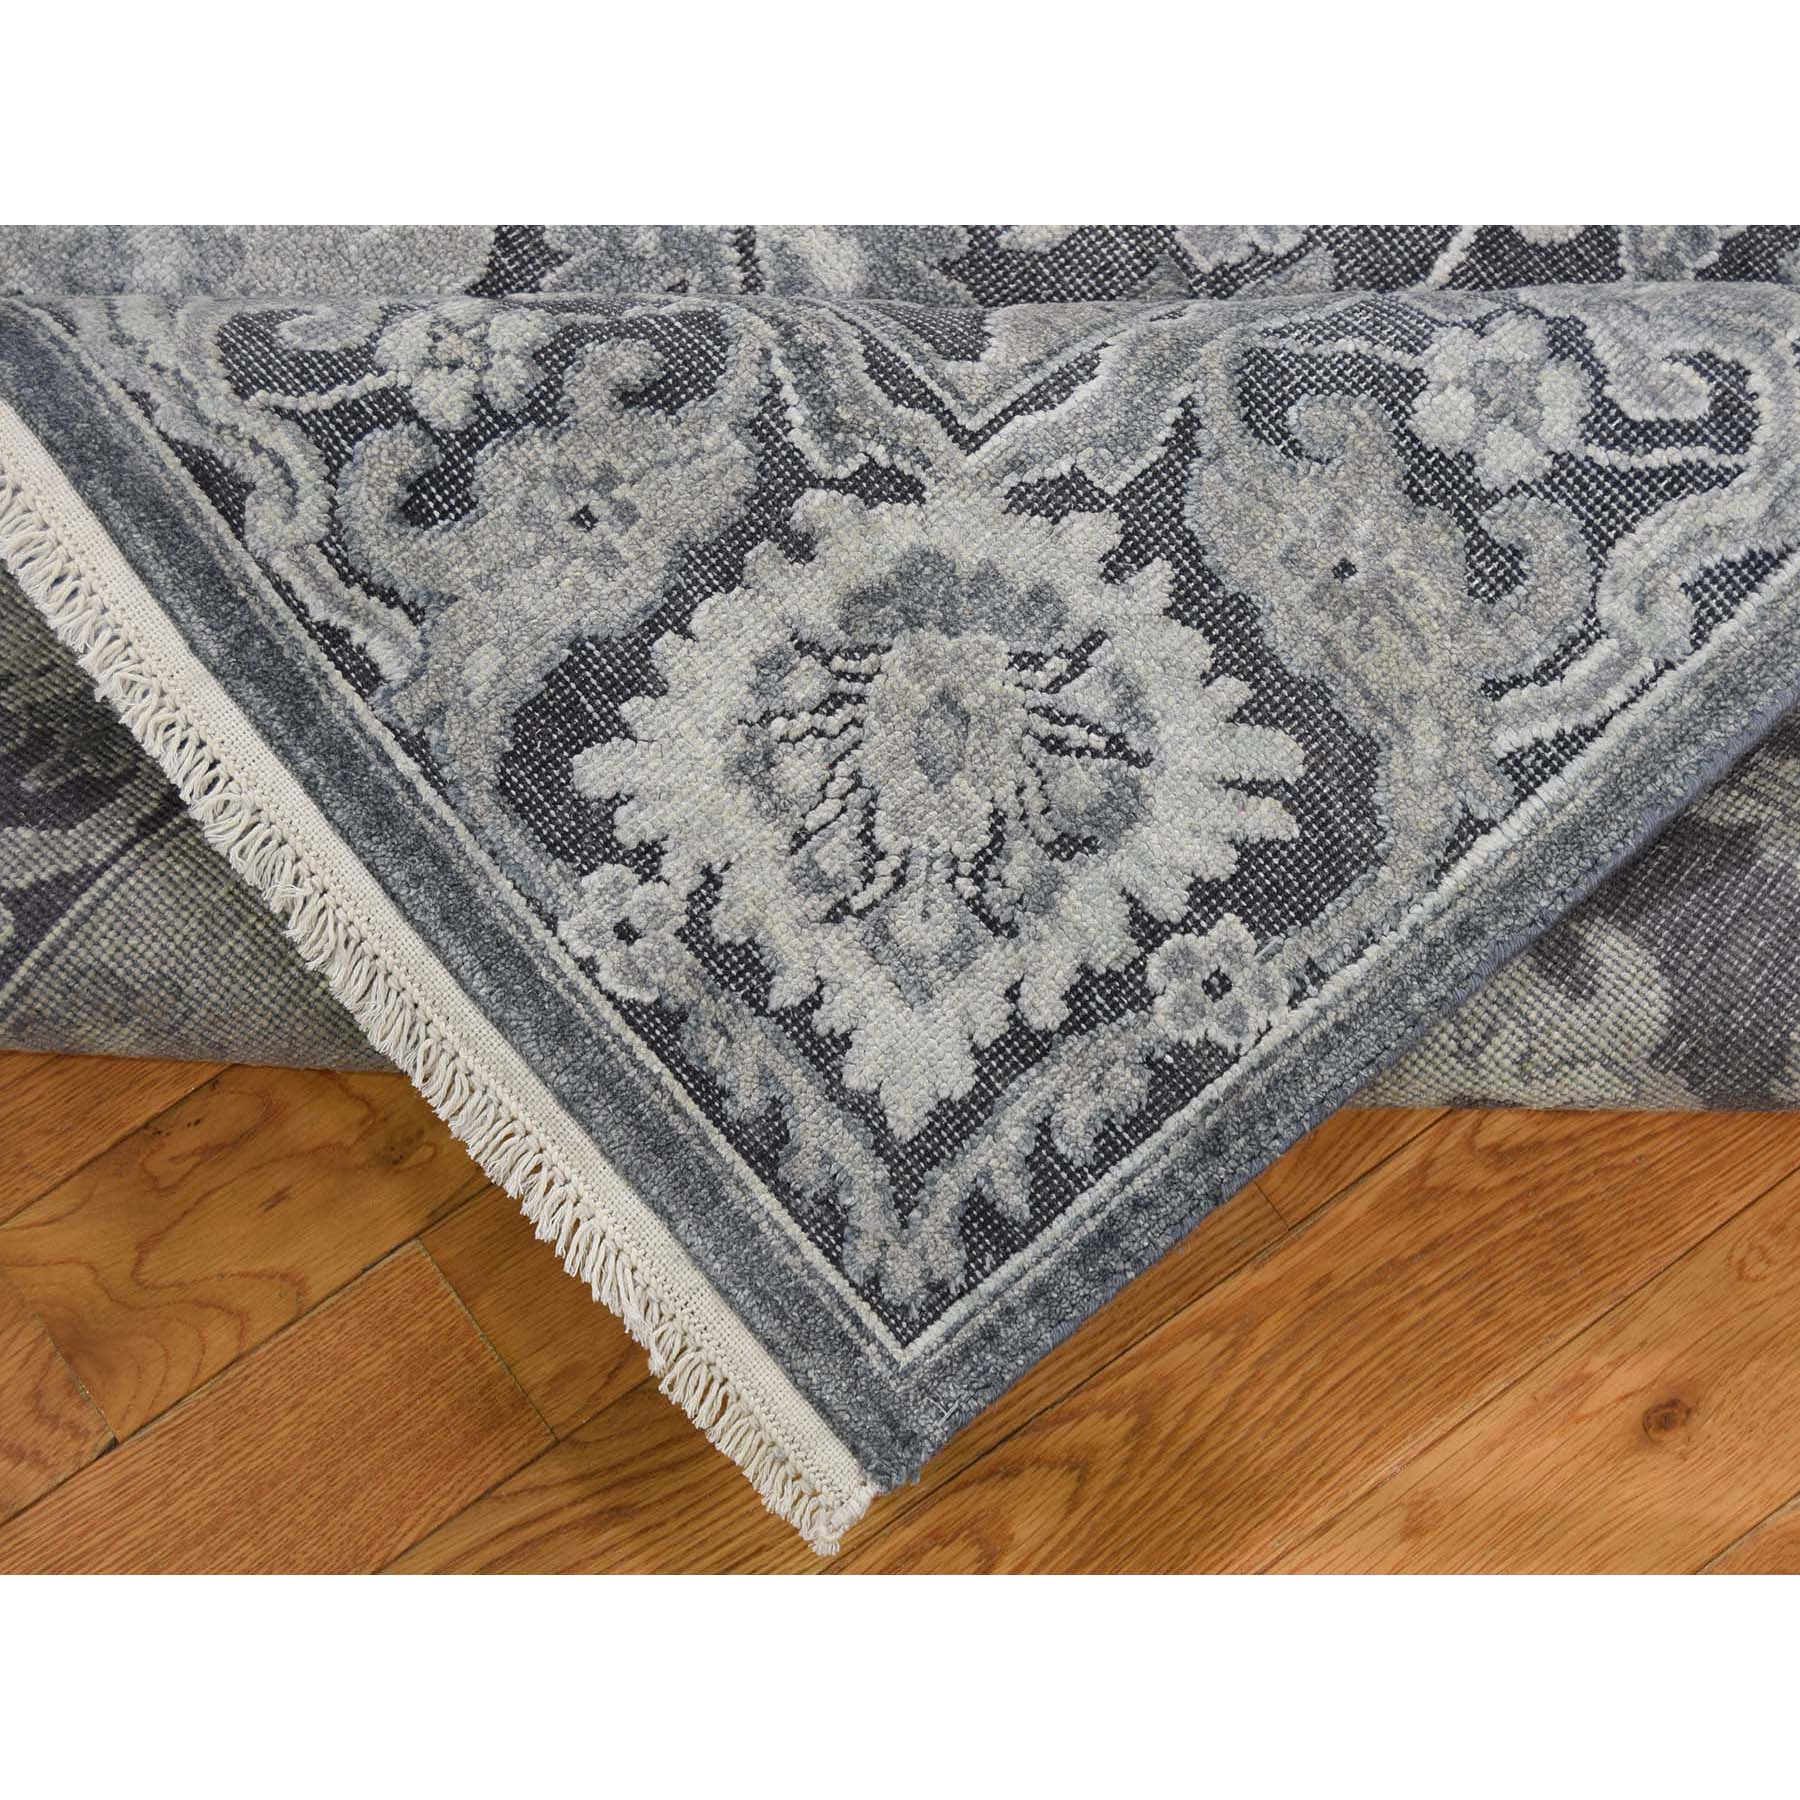 8-10 x12- Hand-Knotted Oushak Influence Silk with Oxidized Wool Oriental Rug